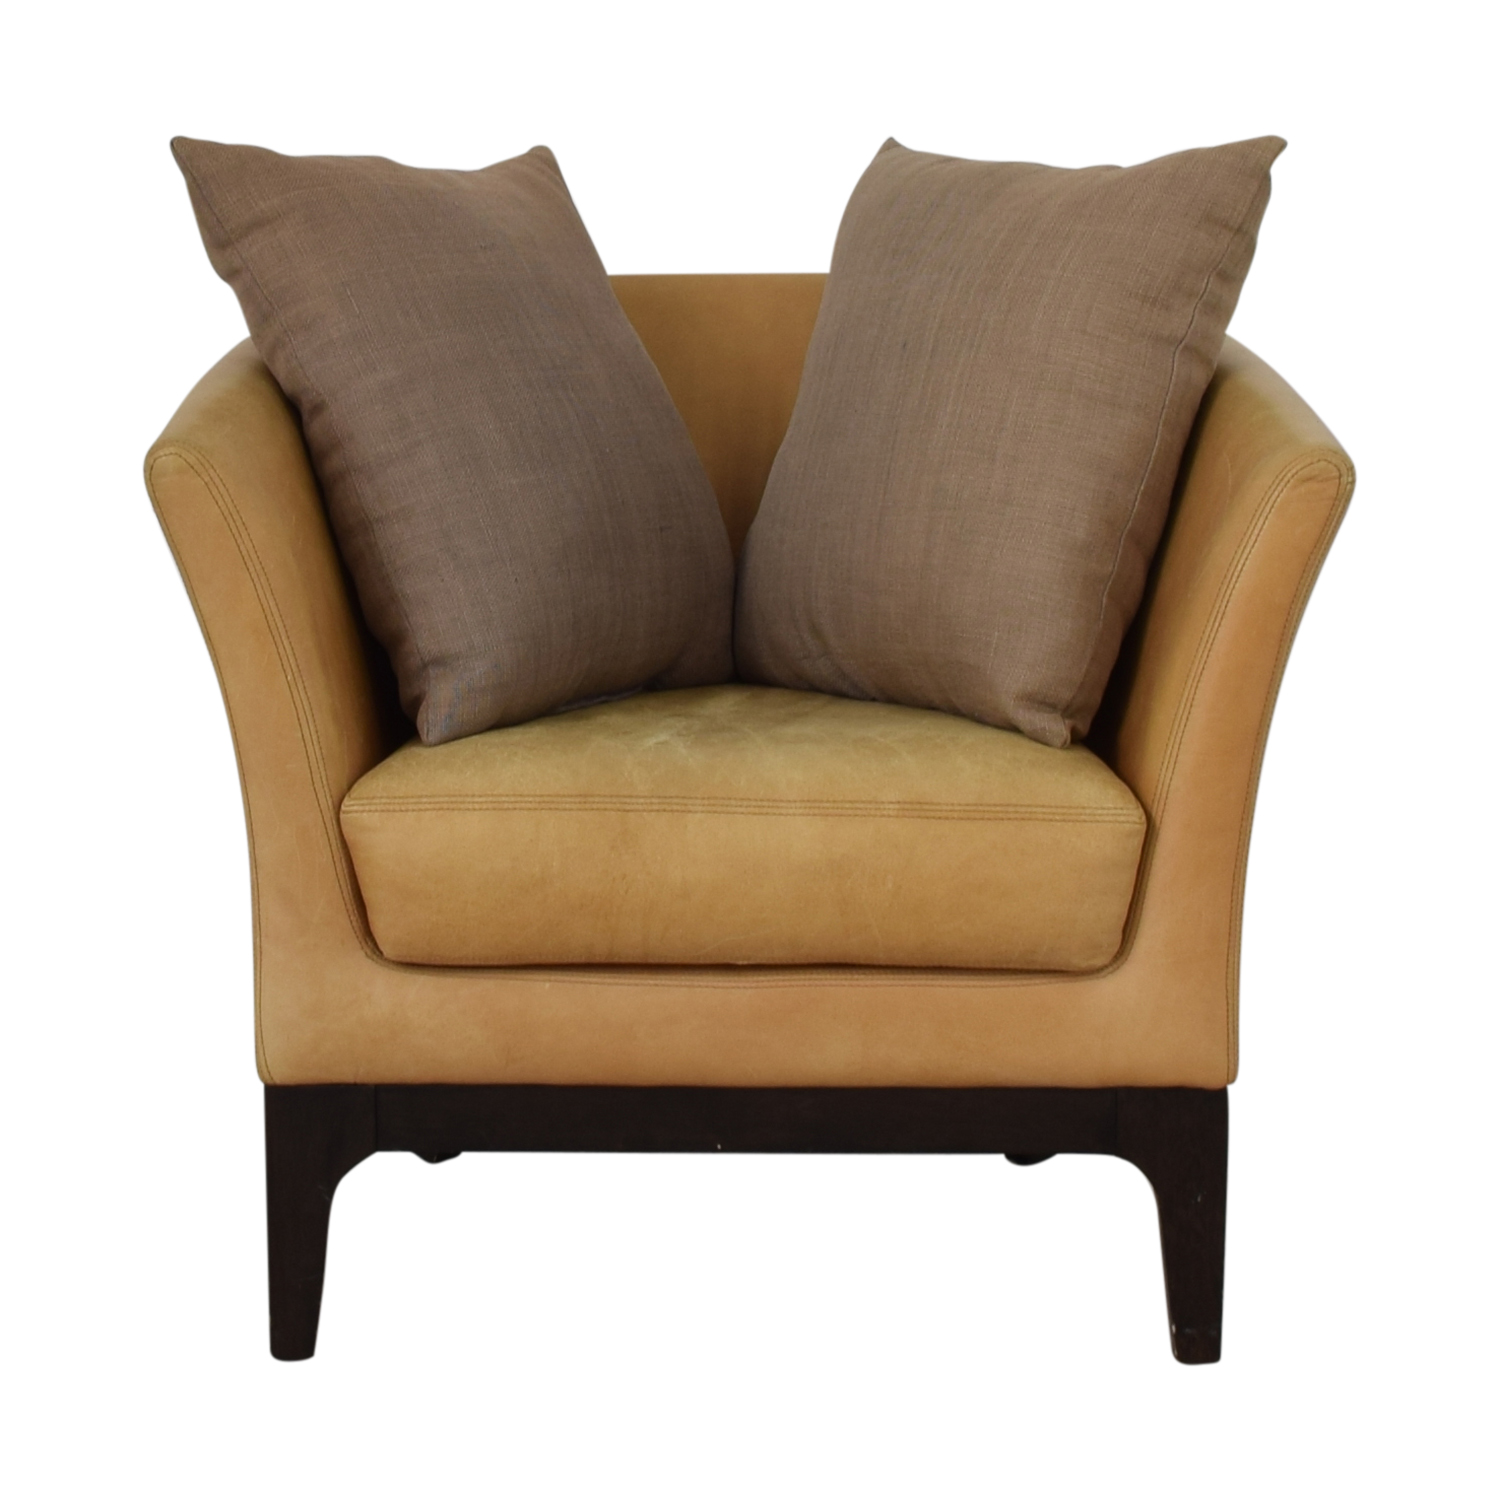 West Elm Chairs: West Elm West Elm Tulip Beige Accent Chair / Chairs